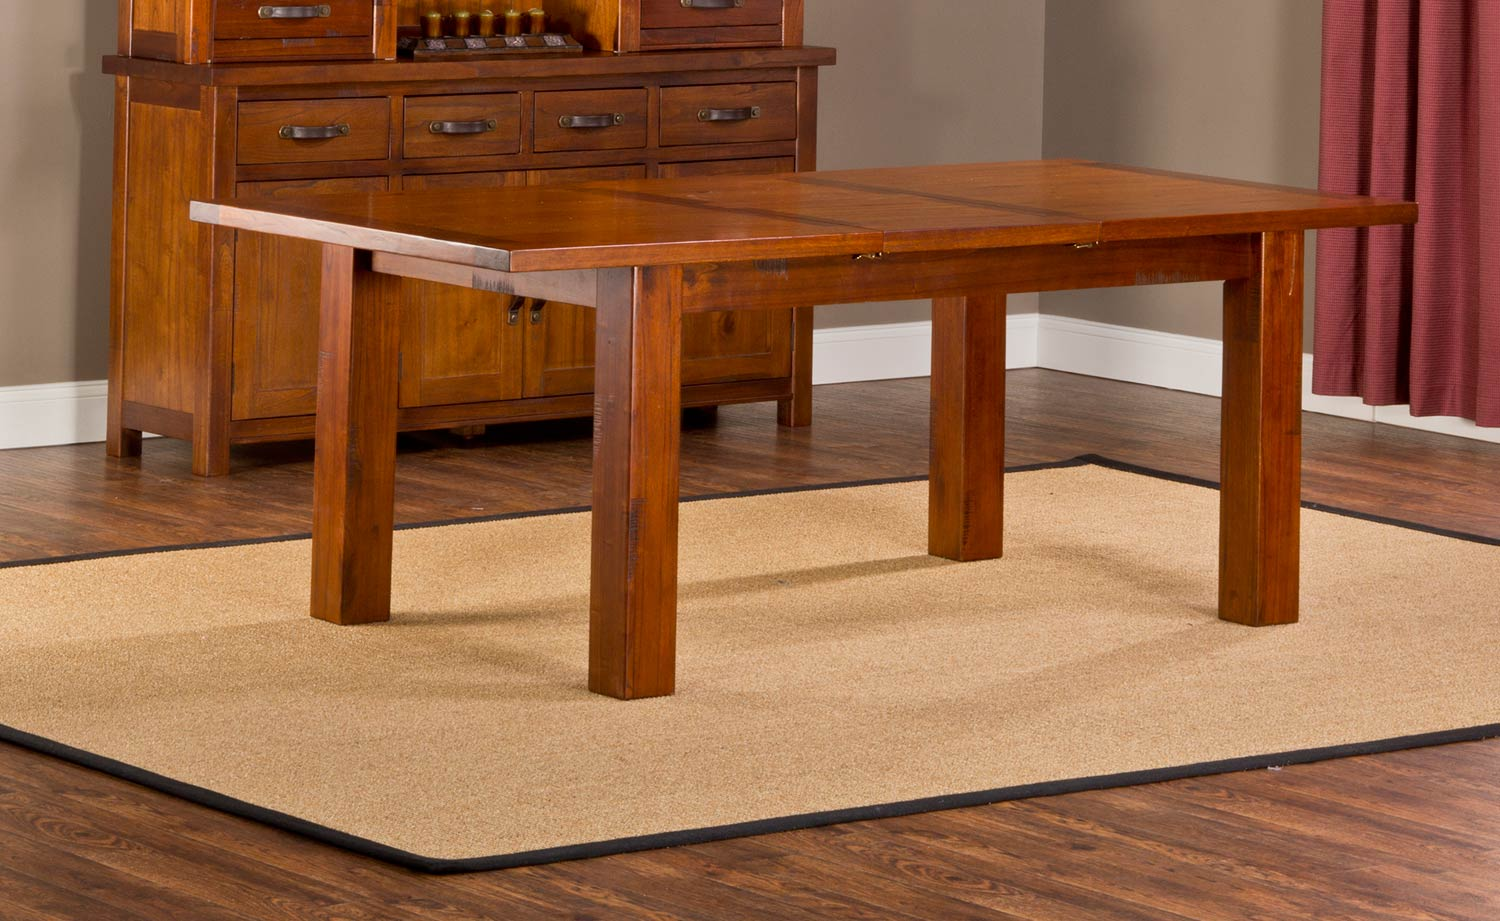 Charmant Hillsdale Outback Dining Table   Distressed Chestnut